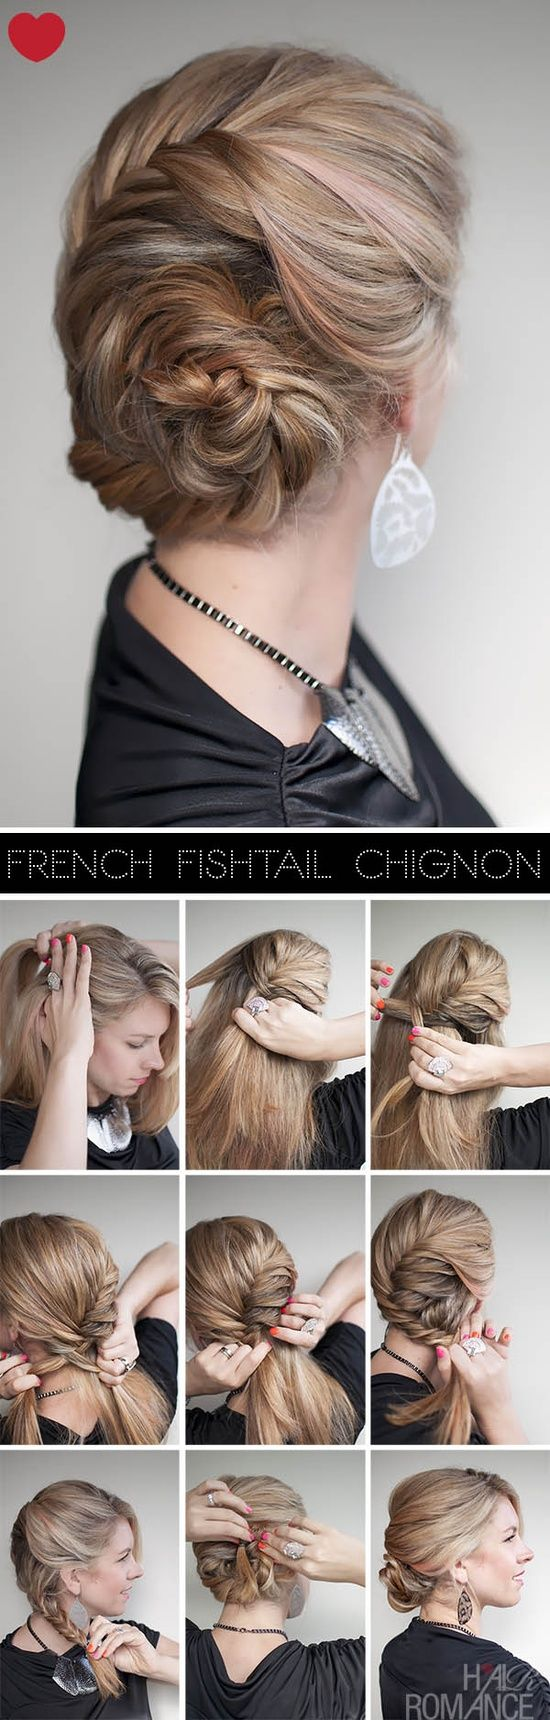 French fishtail chignon a classy updo for nursing students to use